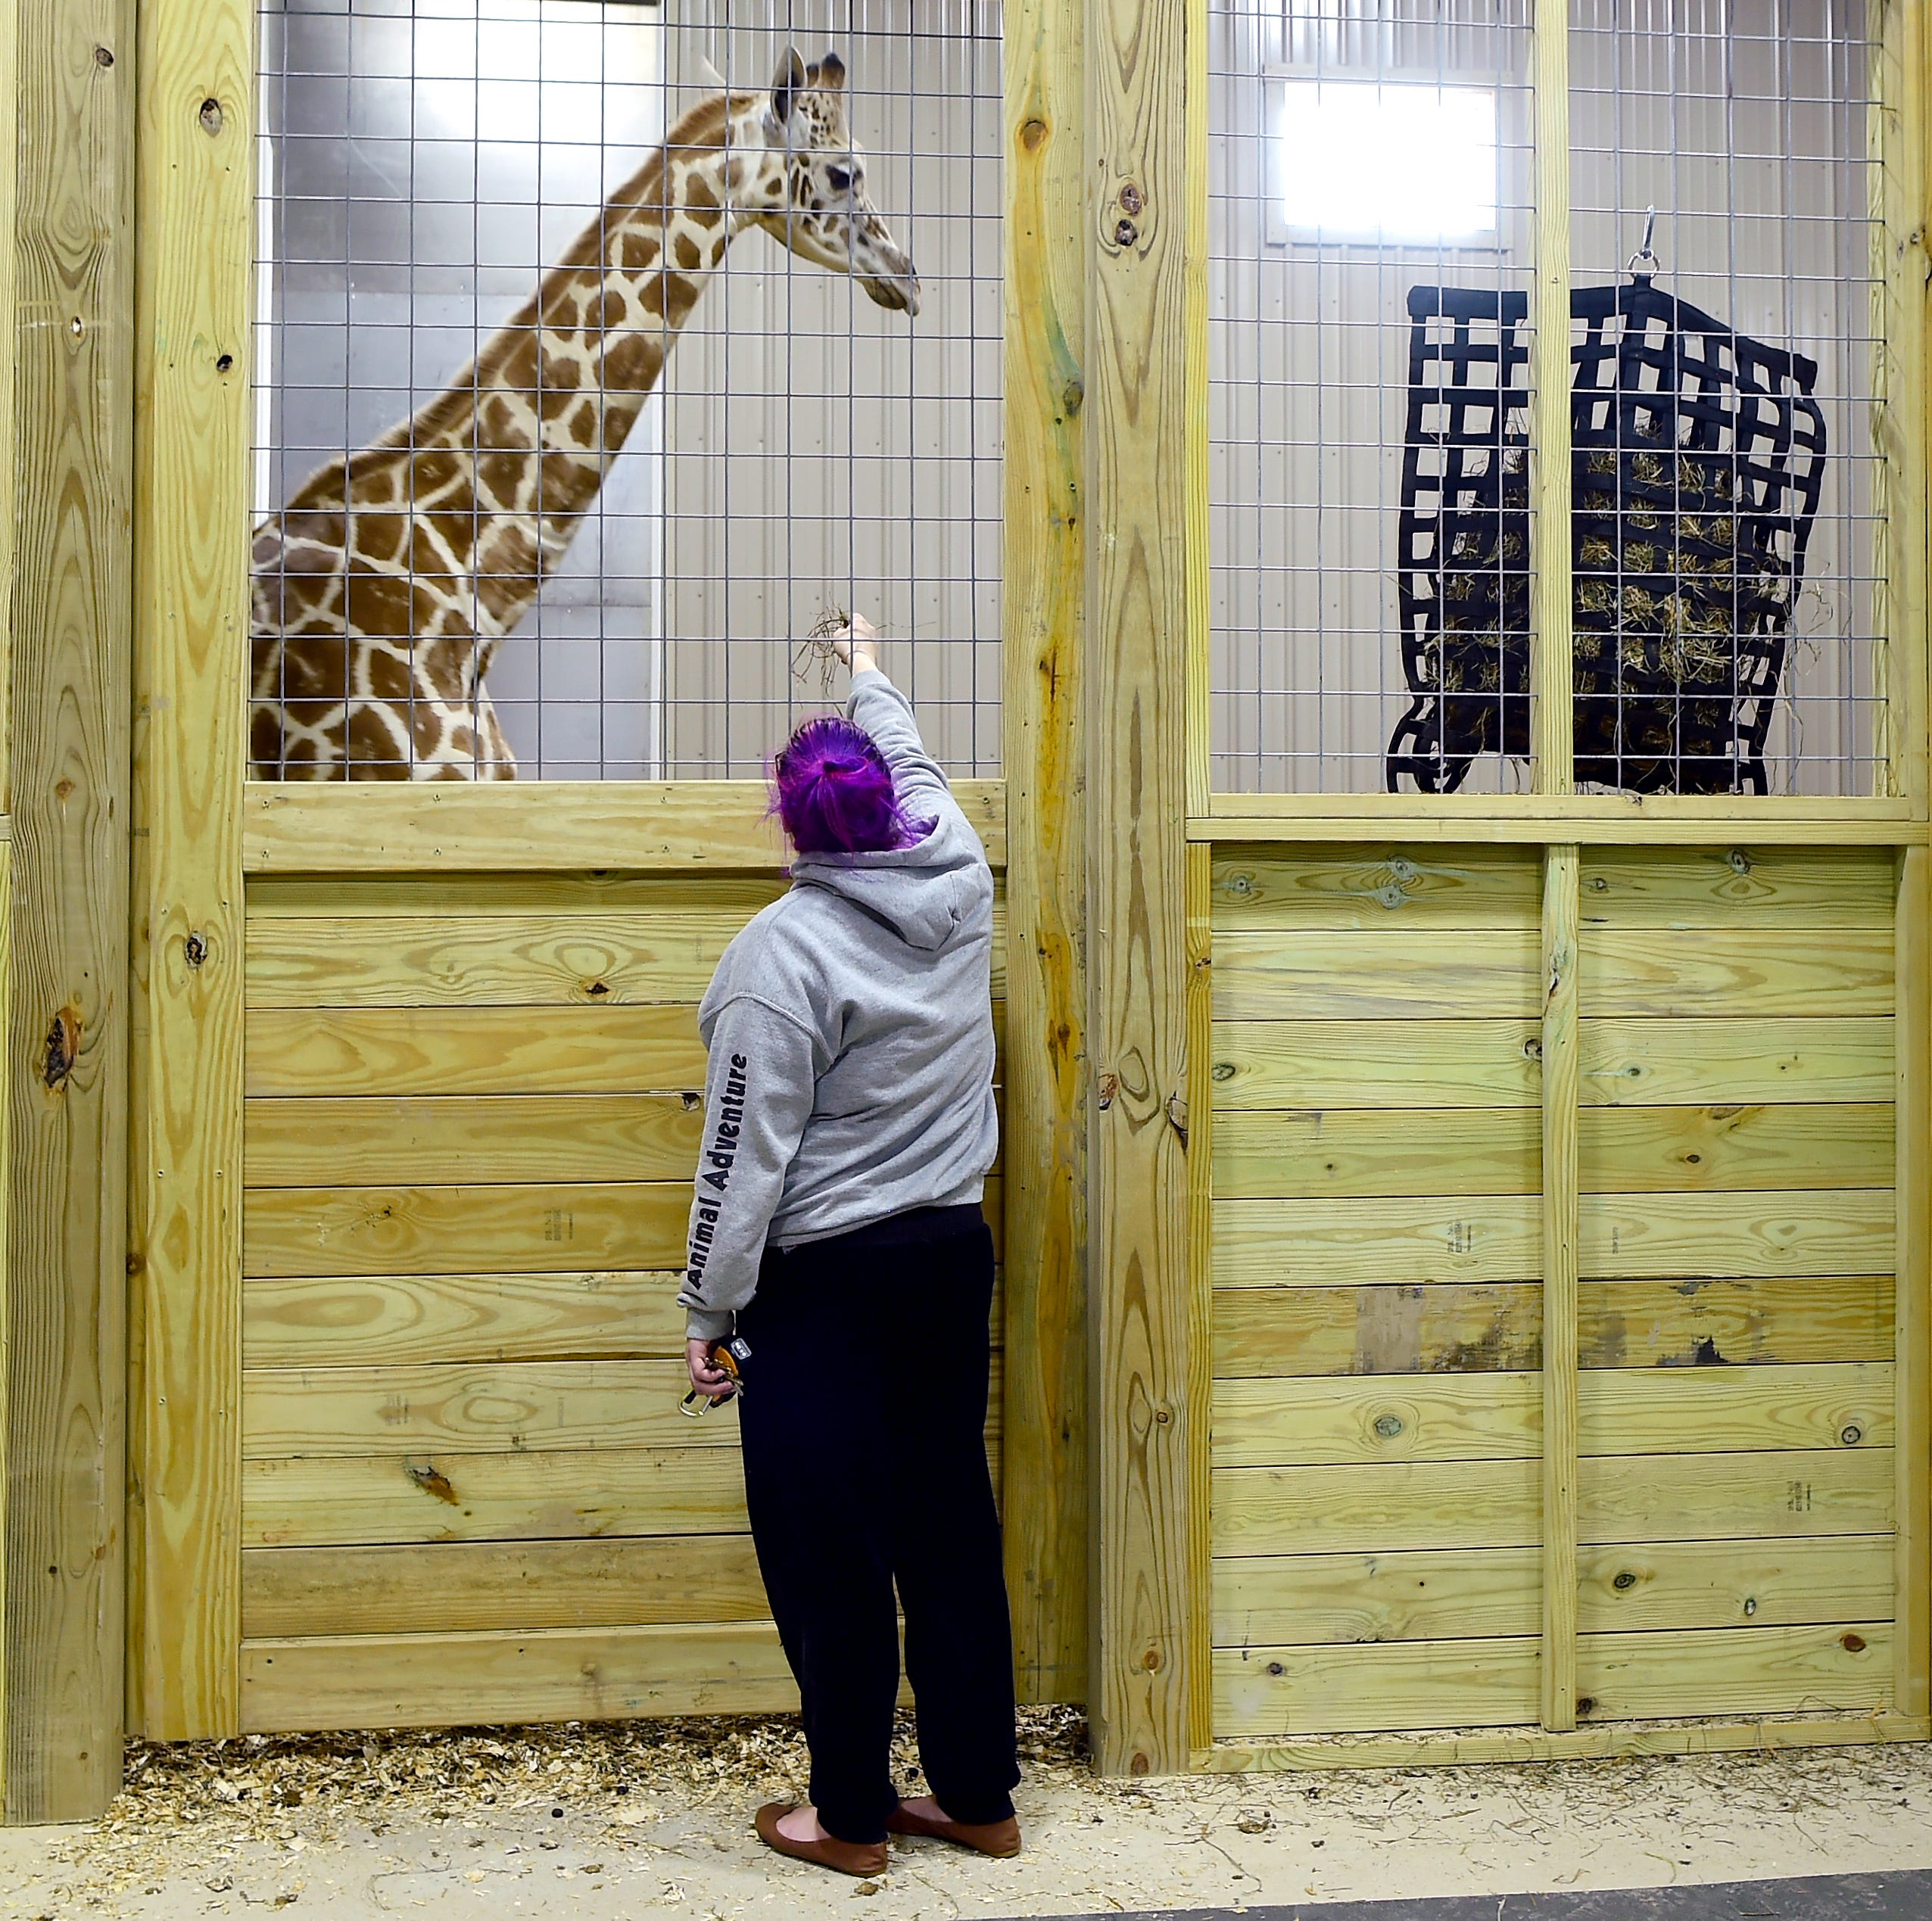 Carly Burke, guest services manager at Animal Adventure Park in Harpursville, attempts to interact with Tajiri on Dec. 4. April The Giraffe's son was recently moved into a new barn at Animal Adventure Park.